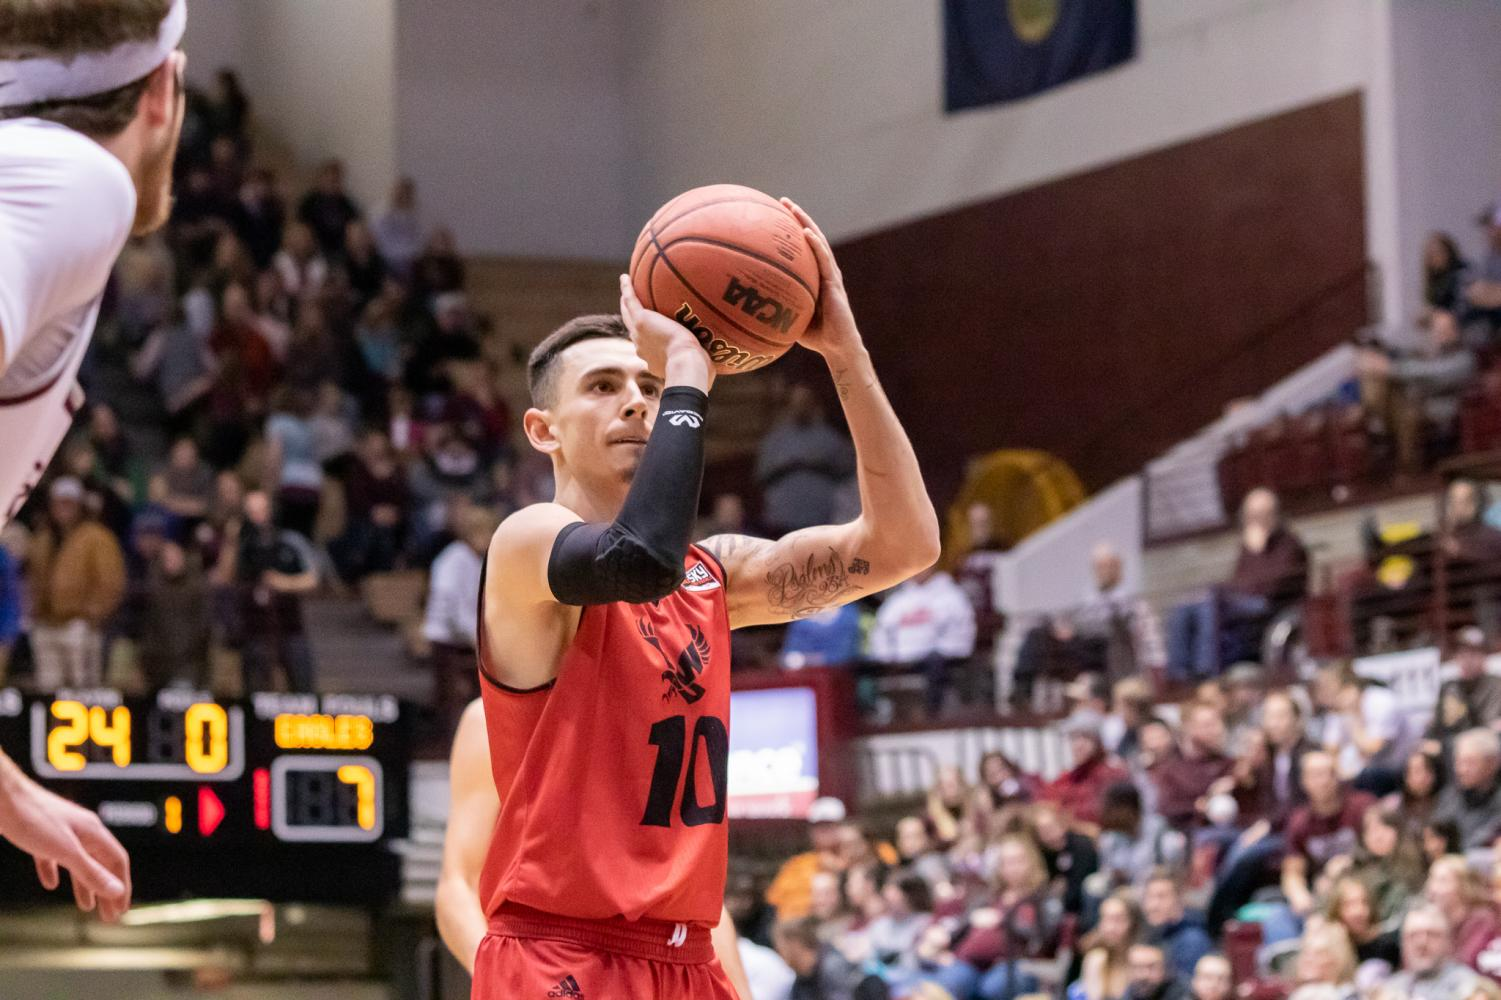 Sophomore guard Jacob Davison shoots a free throw against Montana  on Feb. 9. Davison sat down with The Easterner in February to discuss his journey to EWU.